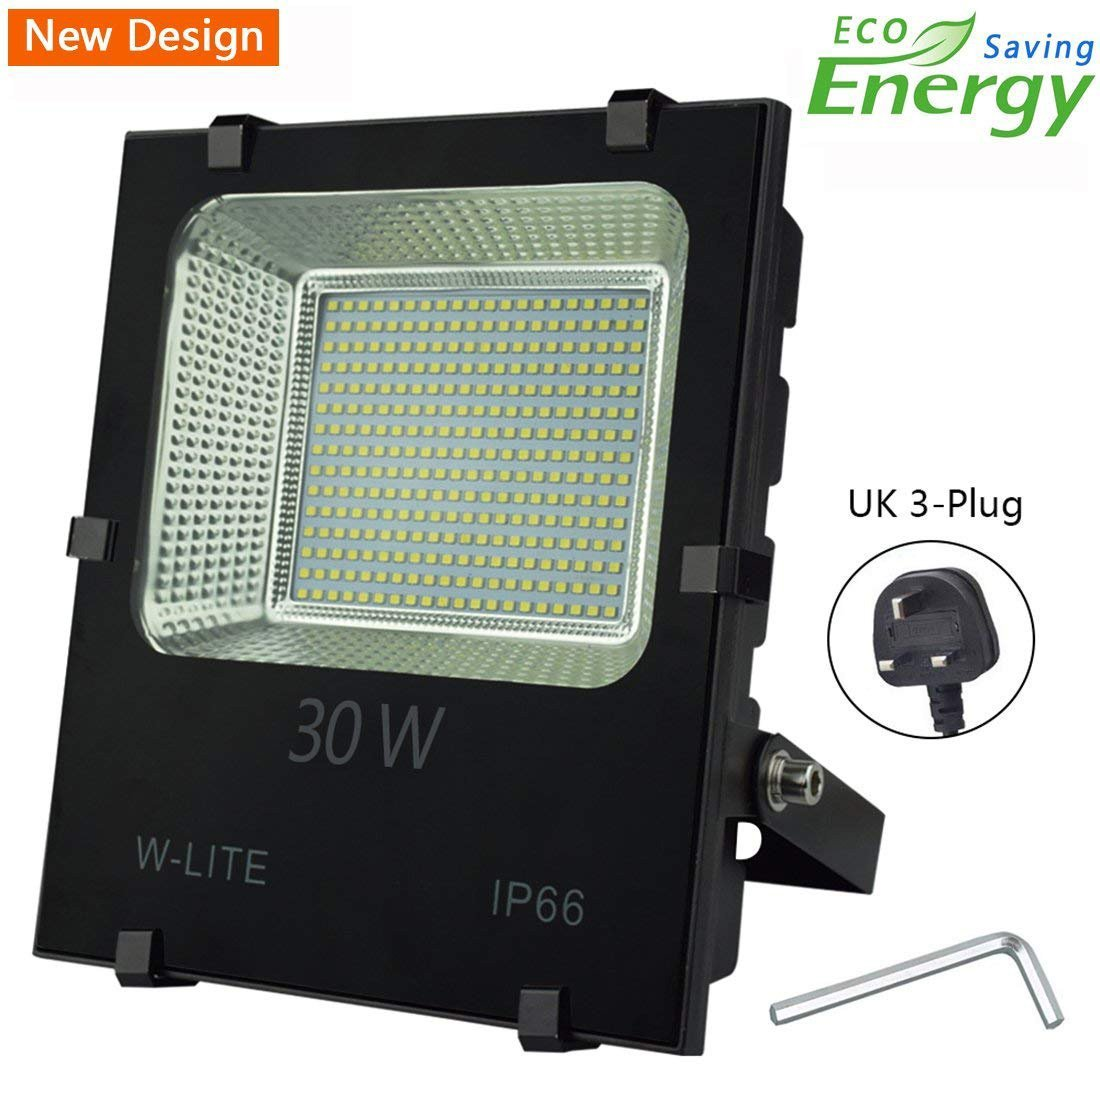 30W LED Garden Floodlight IP65, Outdoor Flood Light Plug in,Upgraded Workshop Light, Super Bright 200 LED Chips, 3200LM, Soft Daylight White, 360W Halogen Bulb Equivalent, Input 86-265V [Energy Class A++] W-LITE